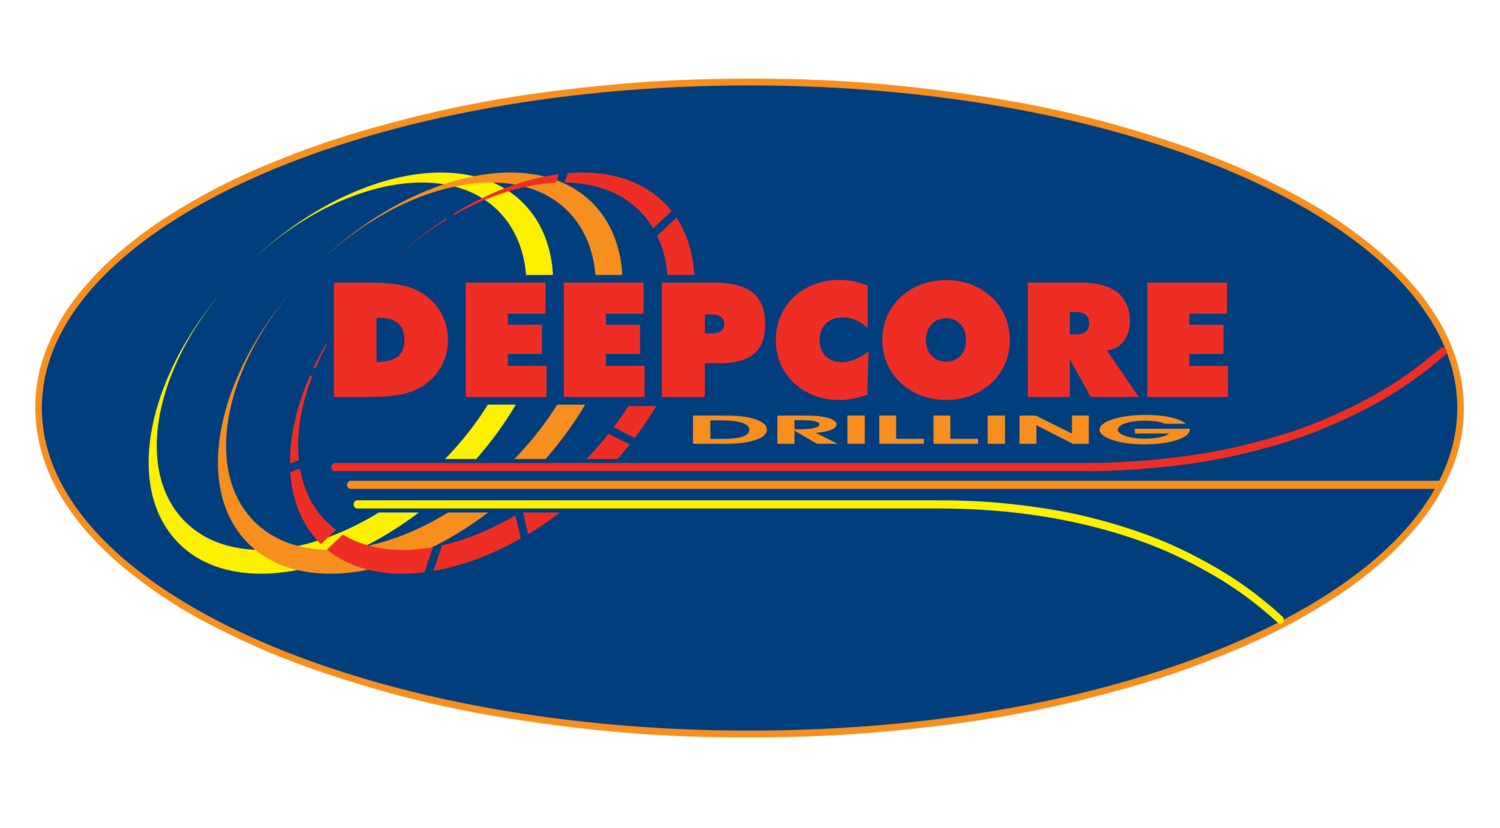 Deepcore Drilling